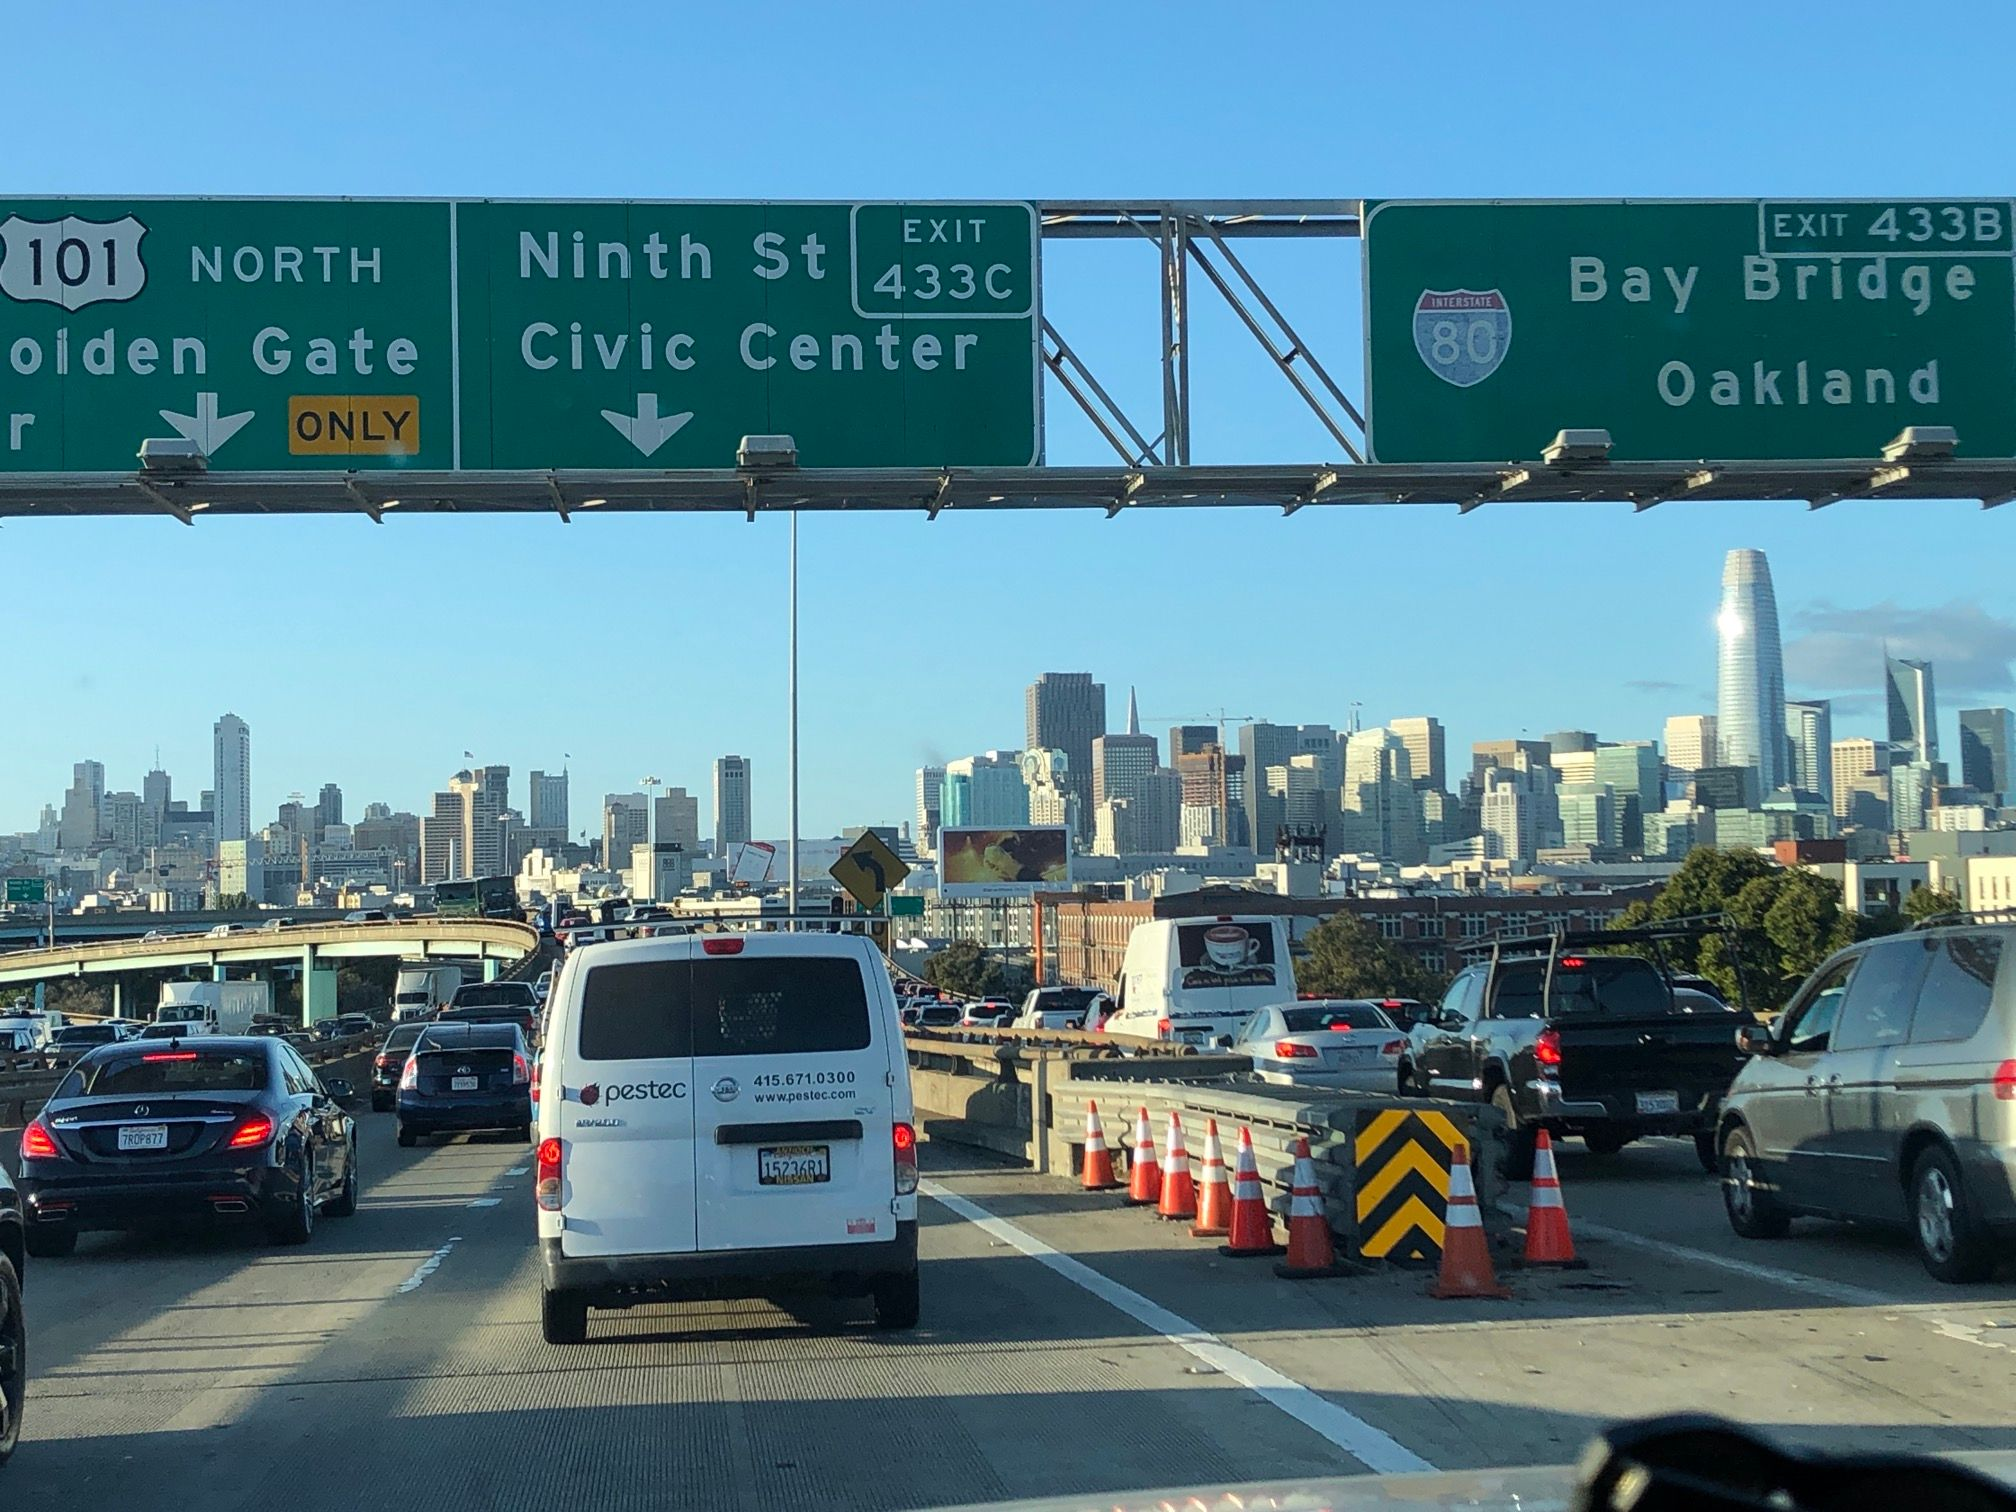 Getting into San Francisco after 3 days of driving